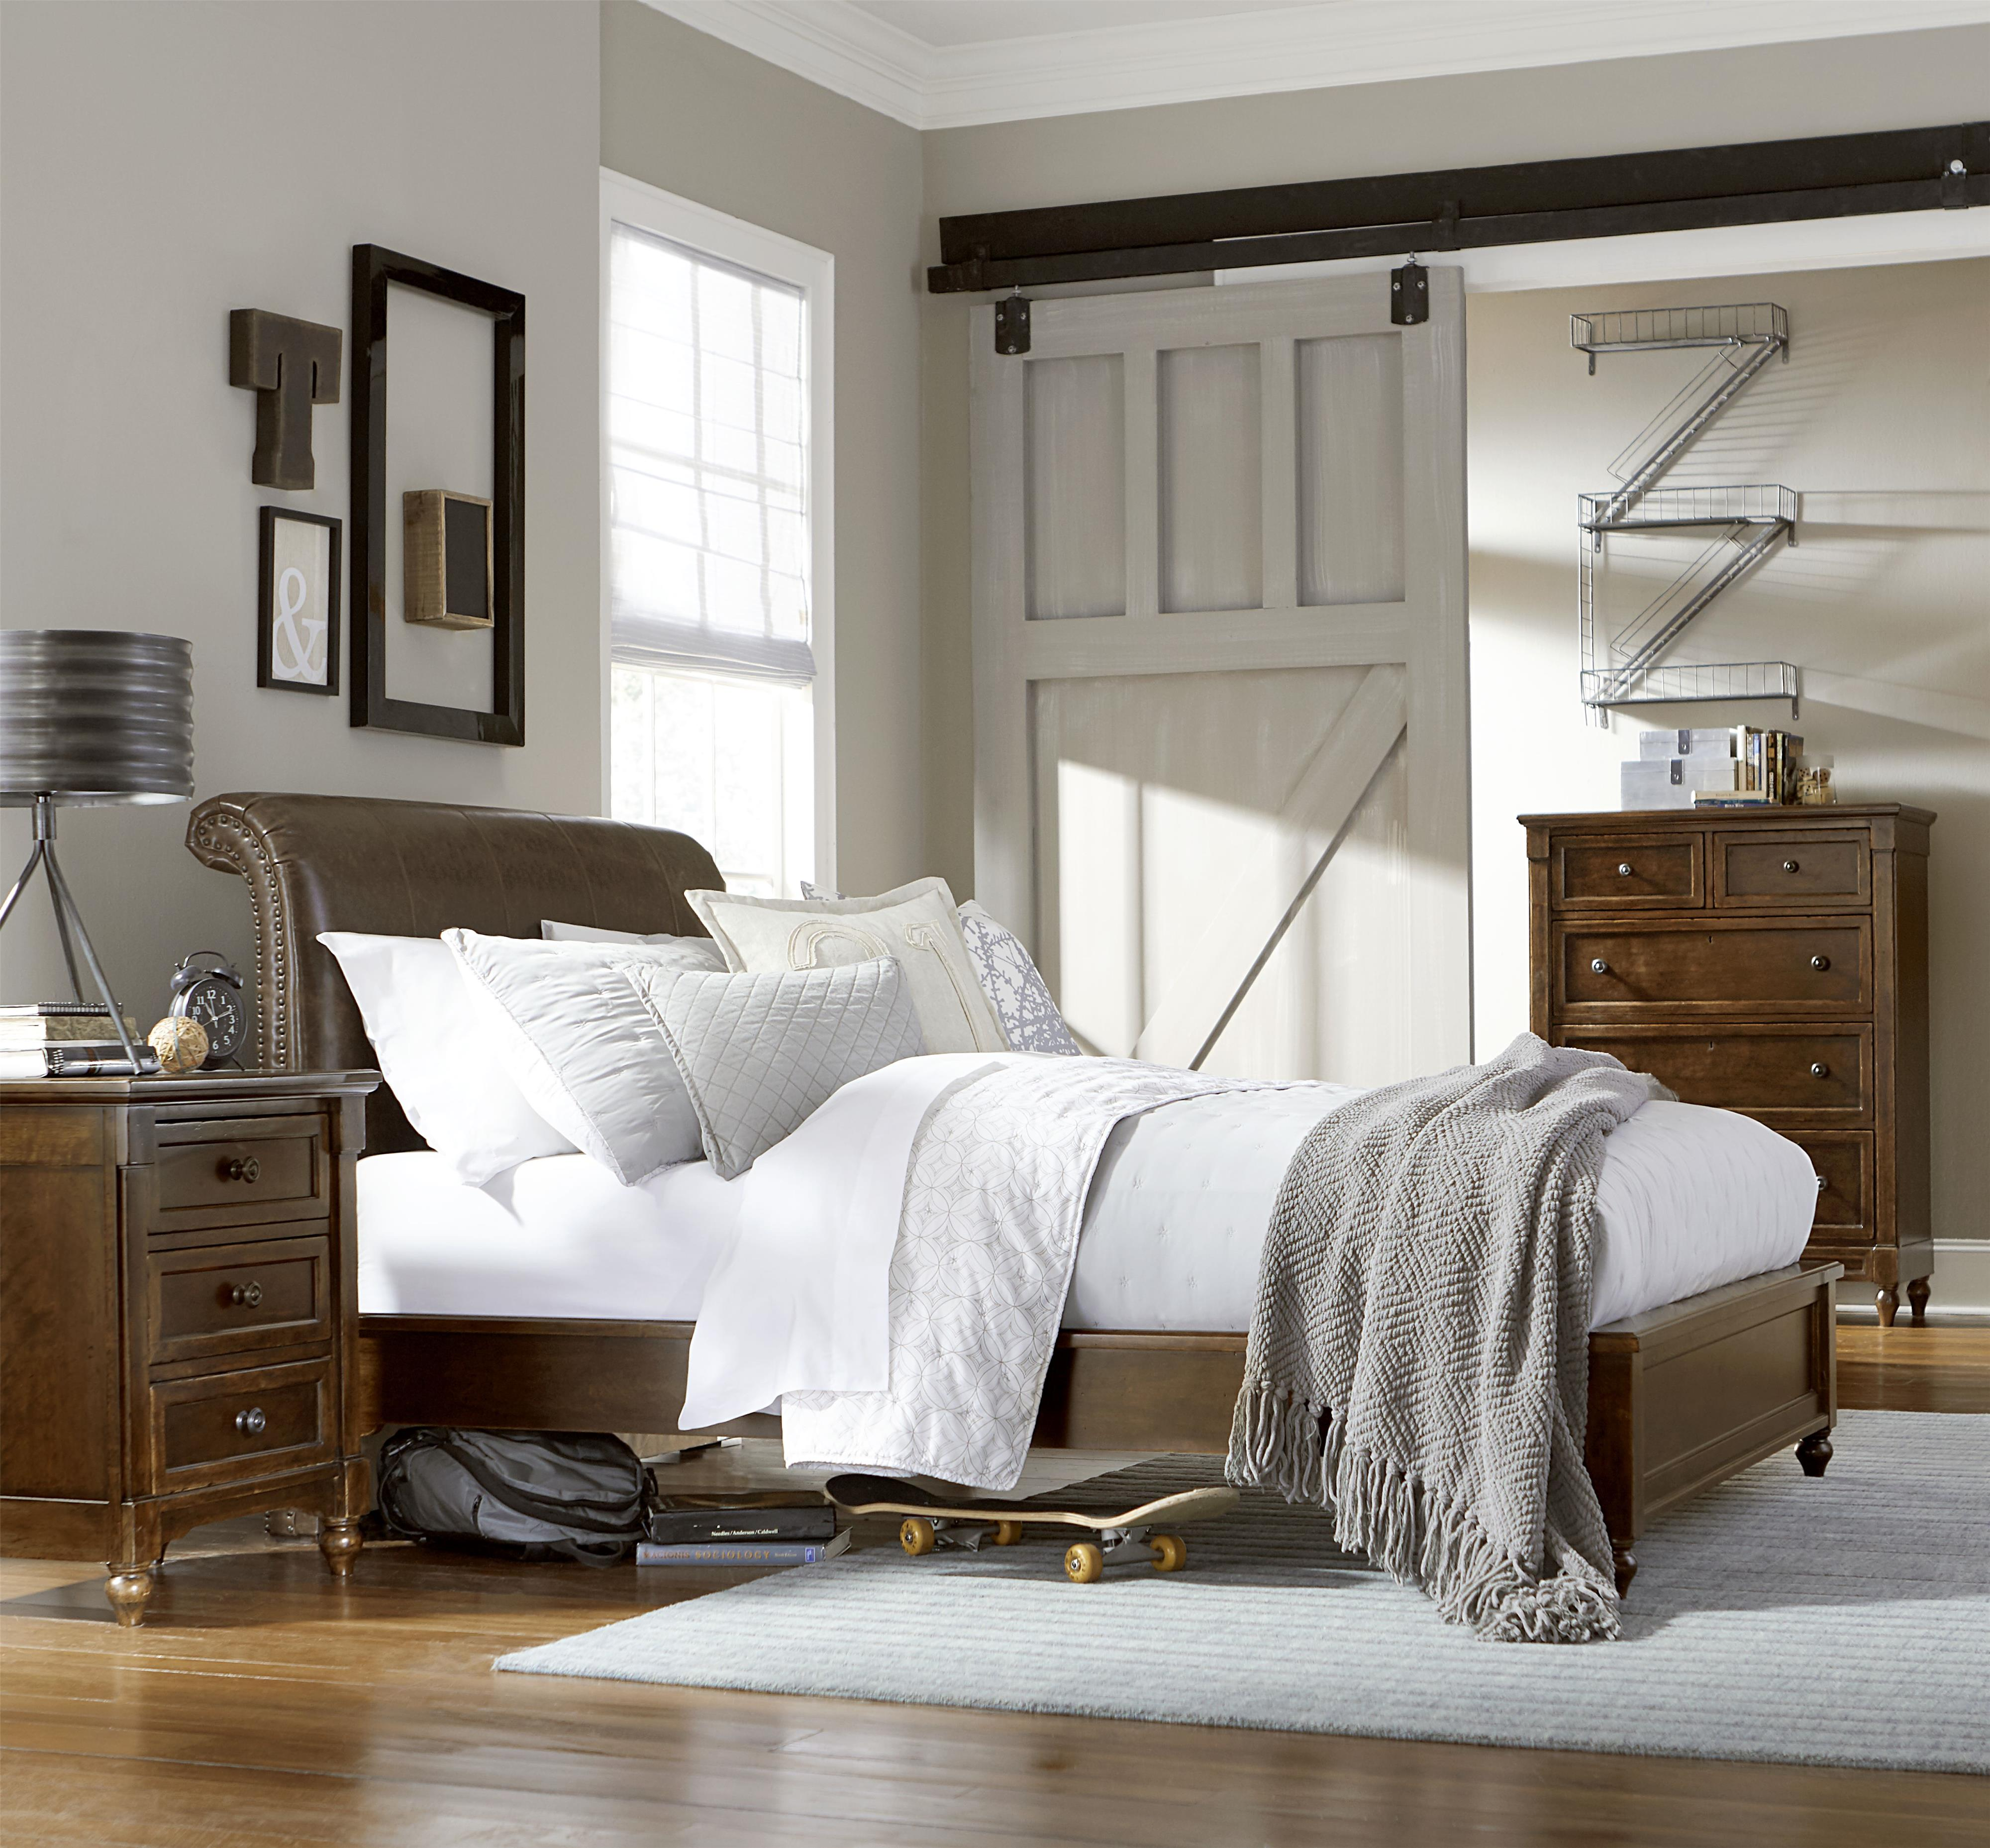 Legacy Classic Kids Big Sur by Wendy Bellissimo Bedroom Group - Item Number: 4920 F Bedroom Group 4